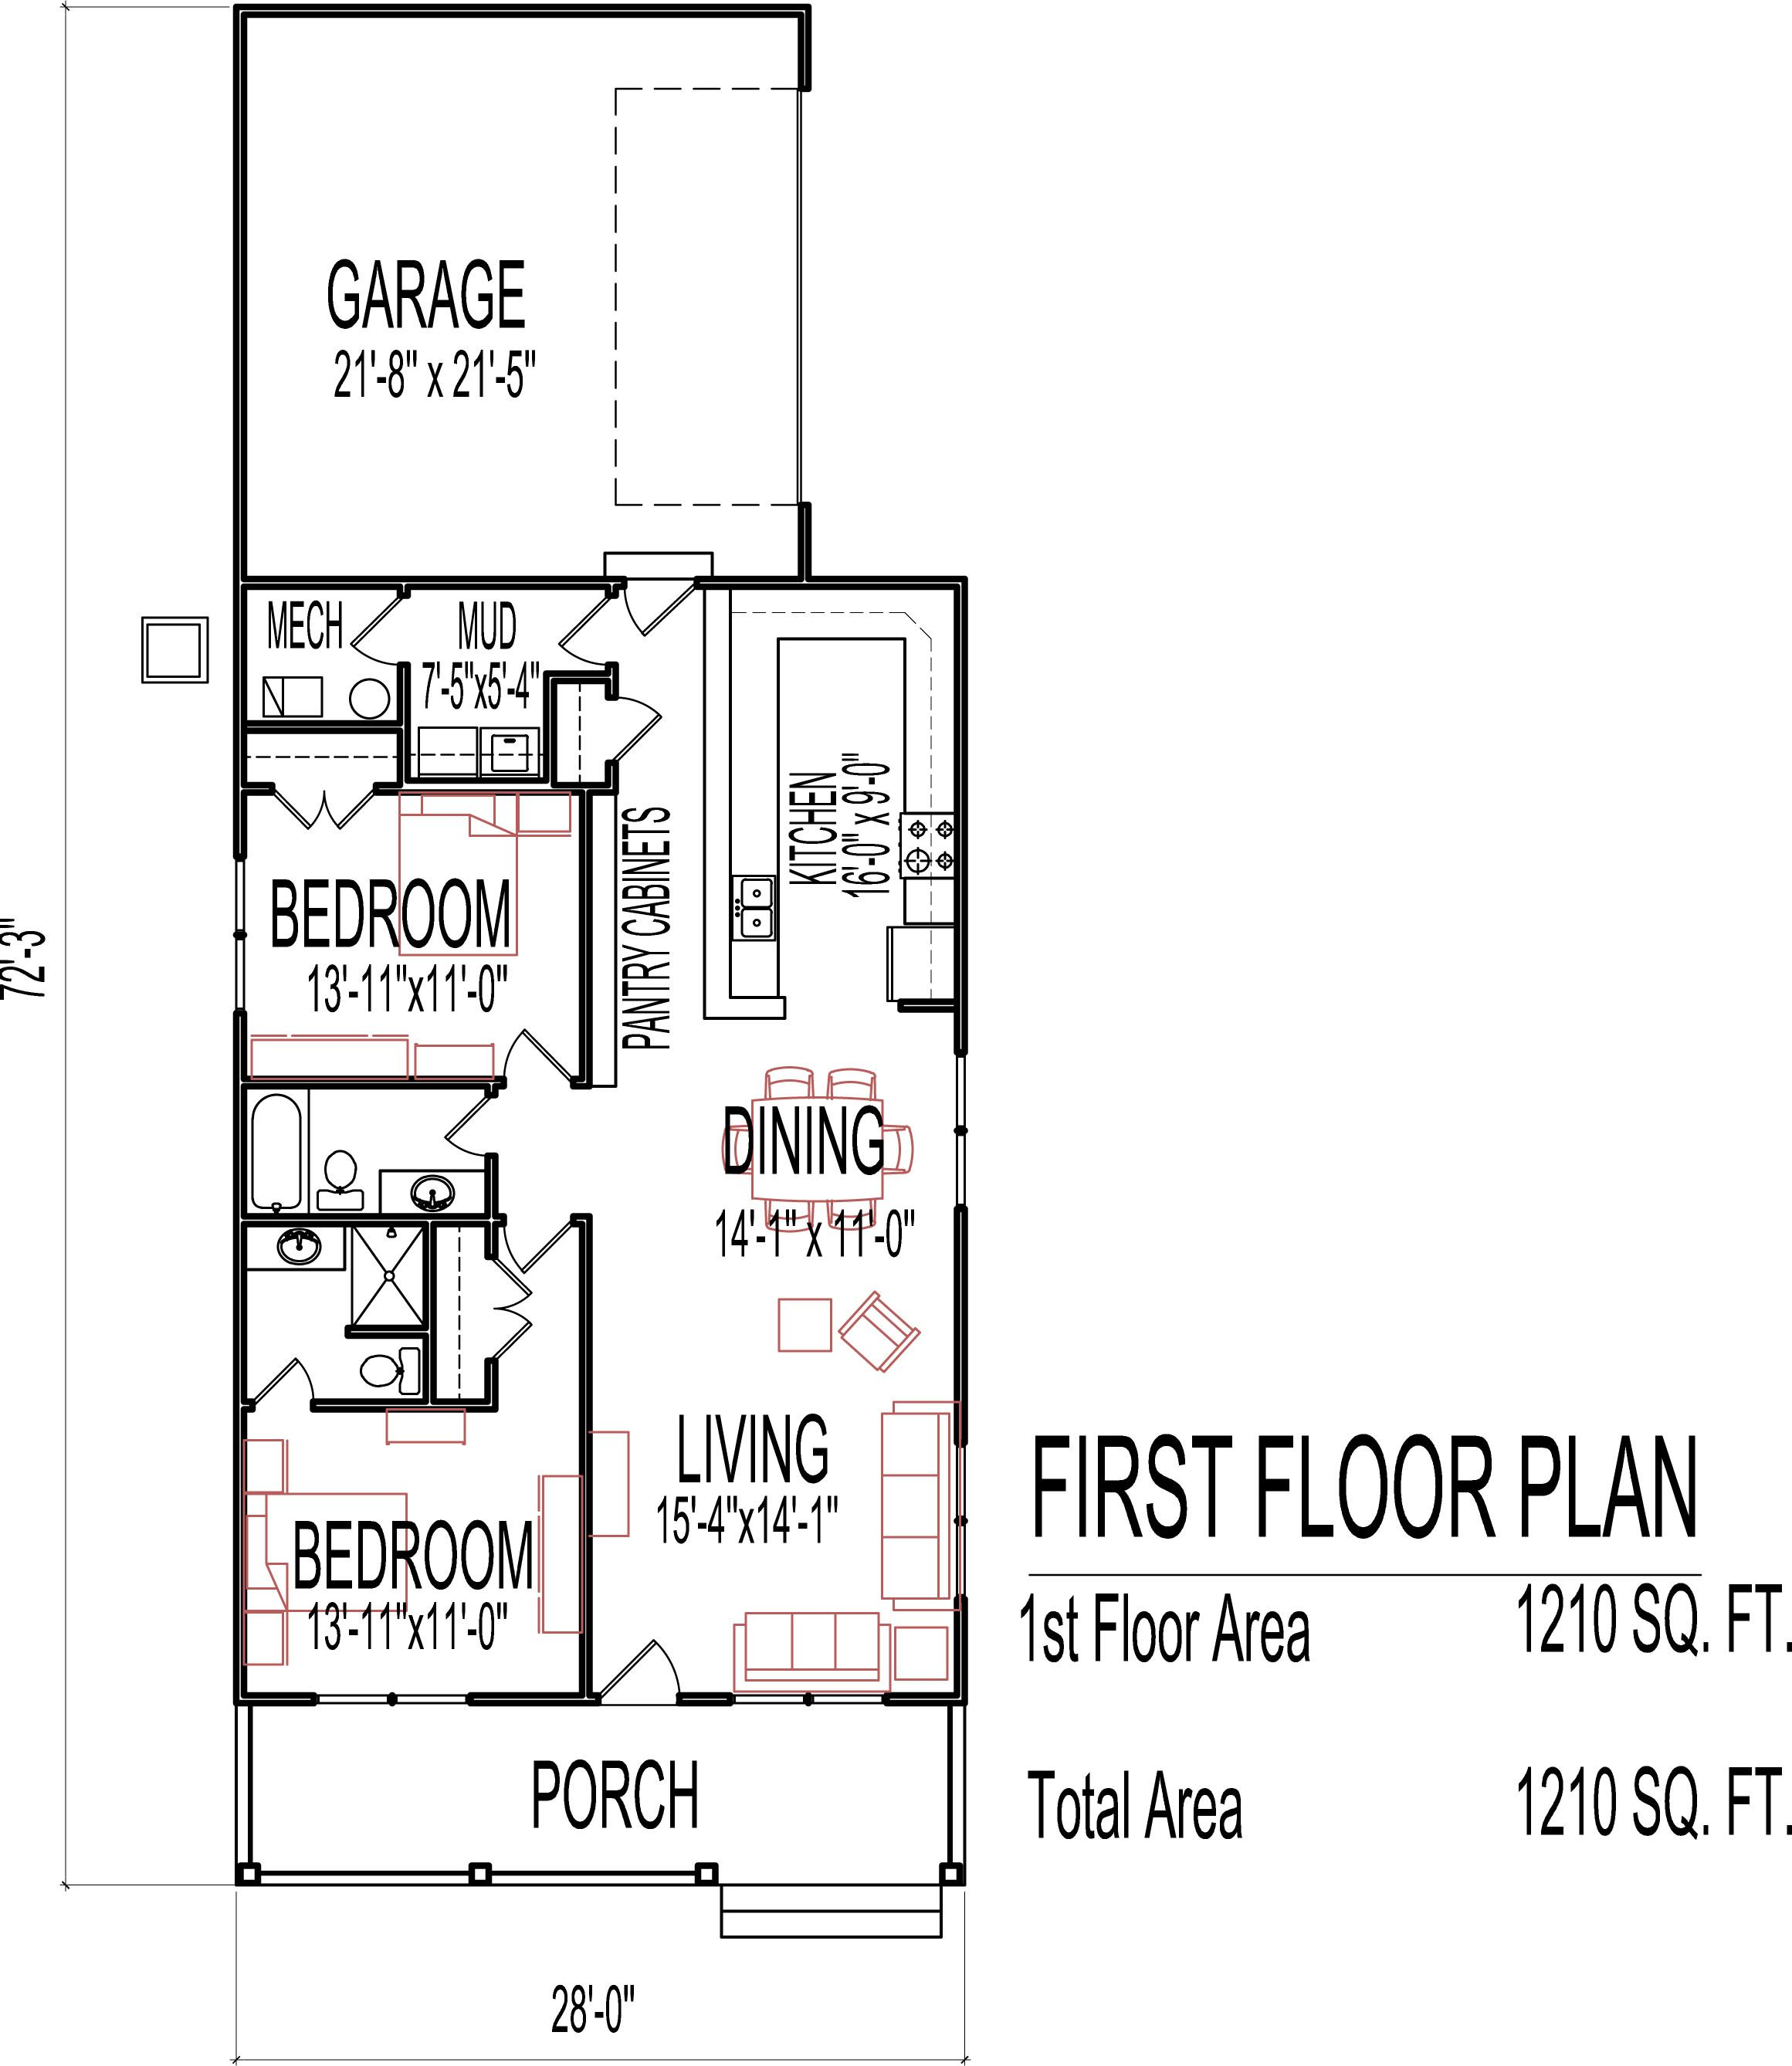 Small low cost economical 2 bedroom 2 bath 1200 sq ft for 2 bedroom one story house plans